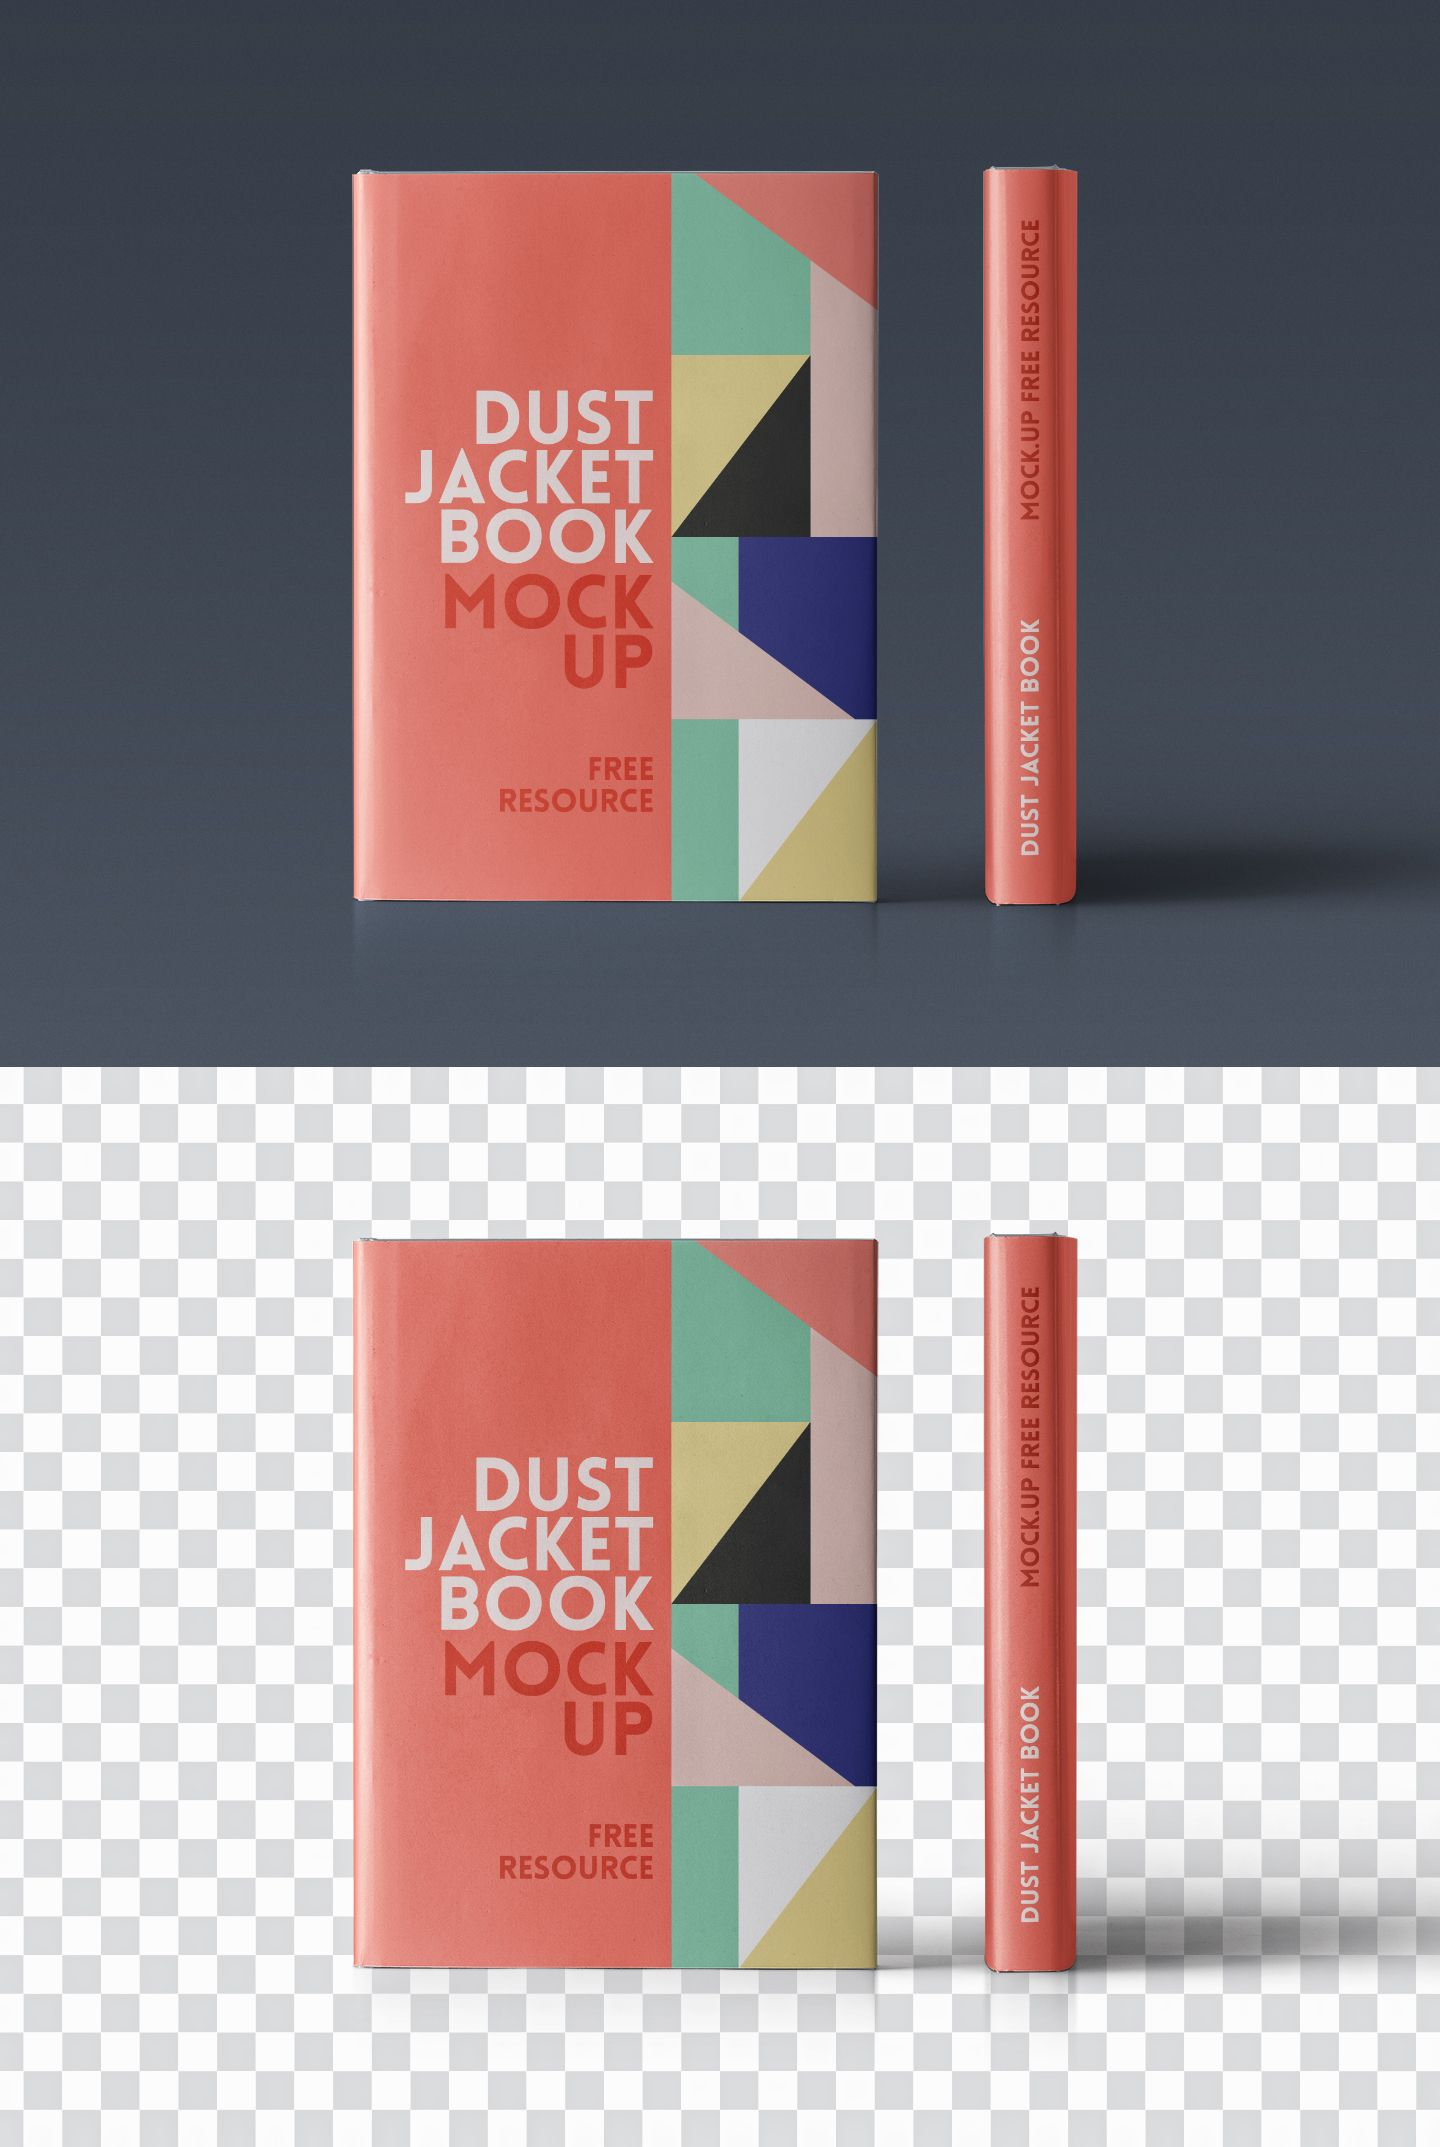 Dust Jacket Book Cover Free Mockup Book Cover Mockup Mockup Free Psd Free Mockup